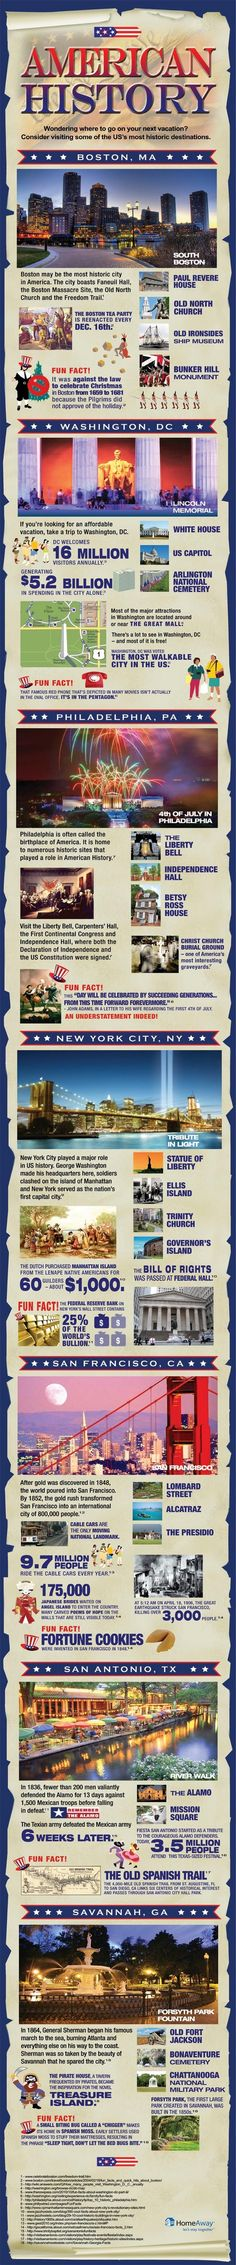 American History – Walk through history on Vacation in these destinations